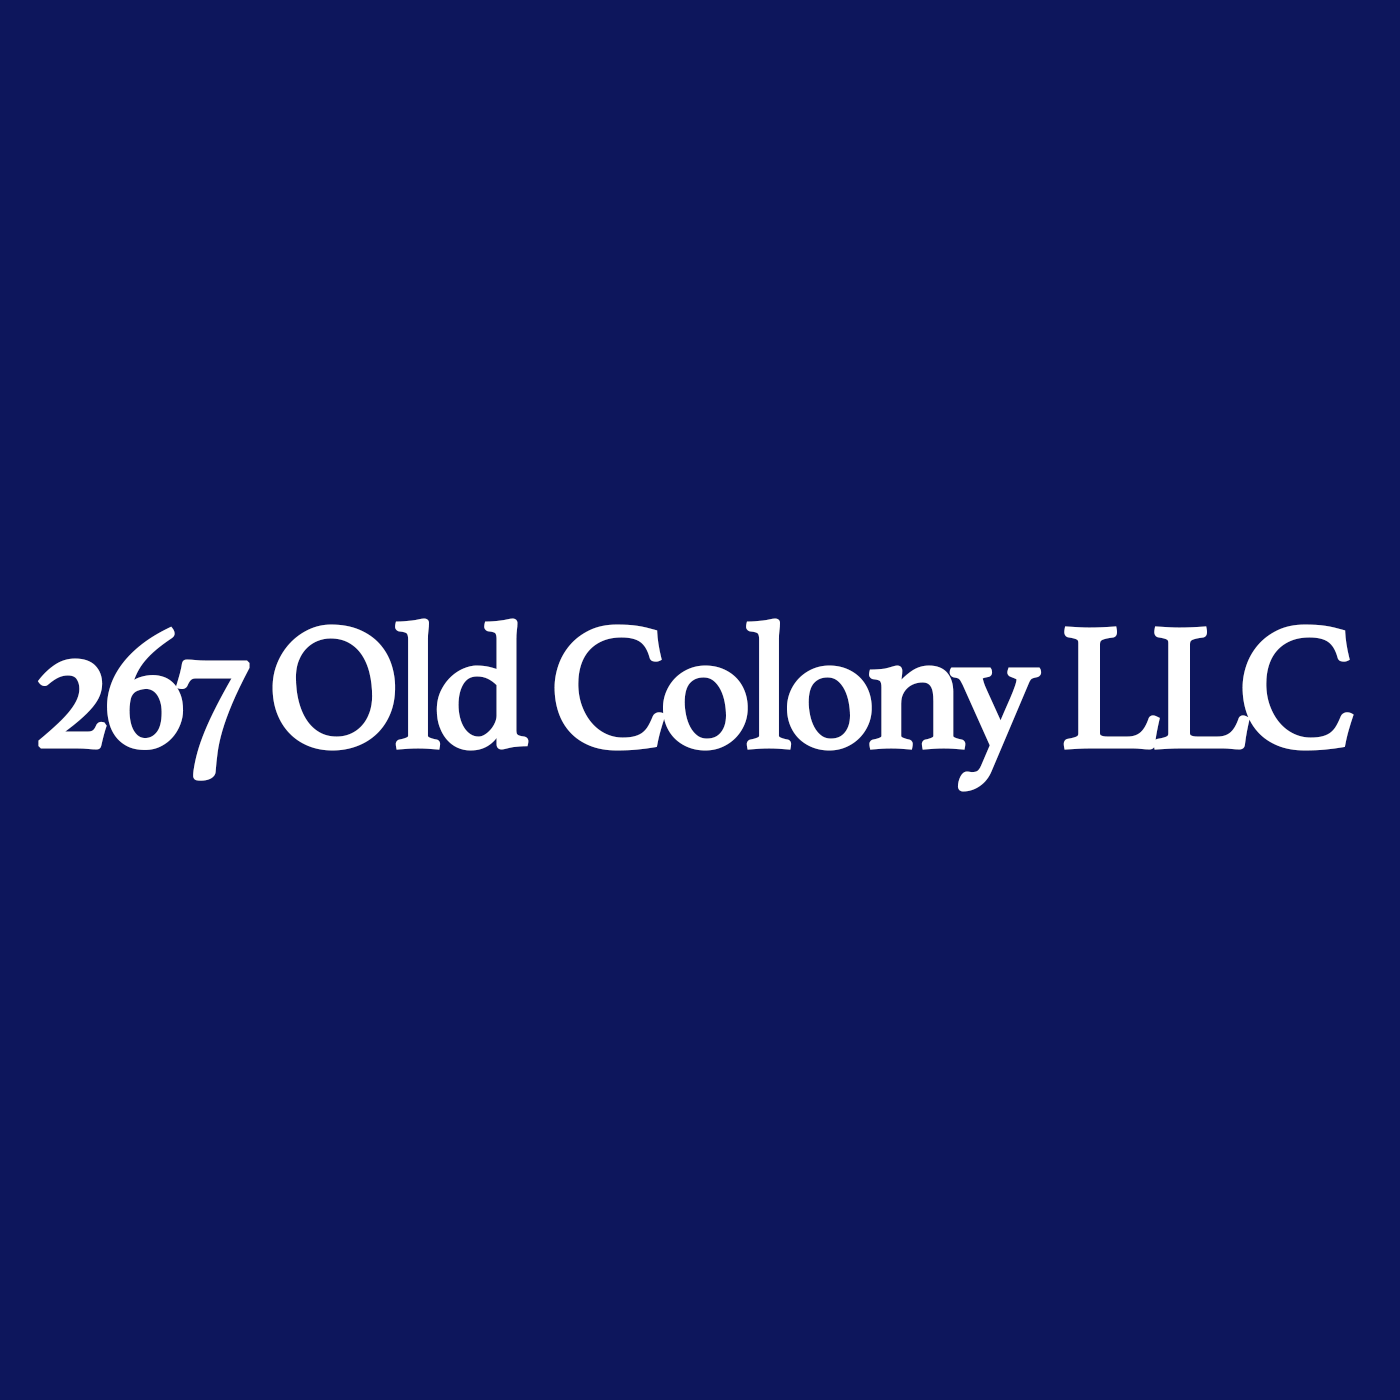 267 old colony llc